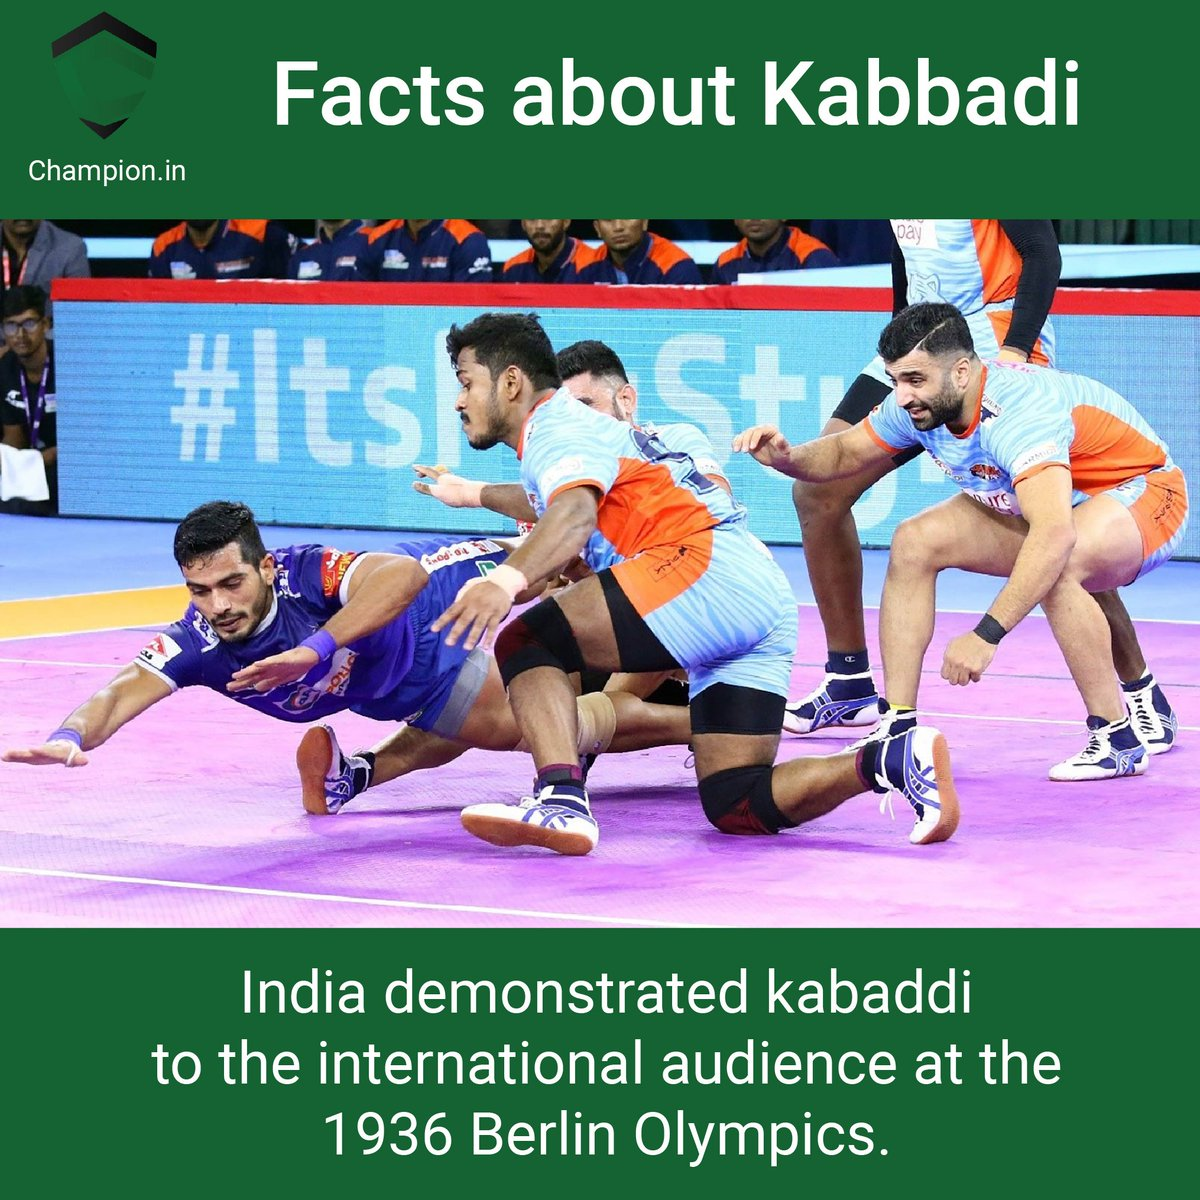 Until 1936, Kabaddi was known only to to Asian countries and the Indian subcontinent. #championsleague #champion #empower #sports #indiansports #sportsperson #sportsmanspirit #kabaddi #facts #demonstrated #international #audience #olympics #games #ancient #health